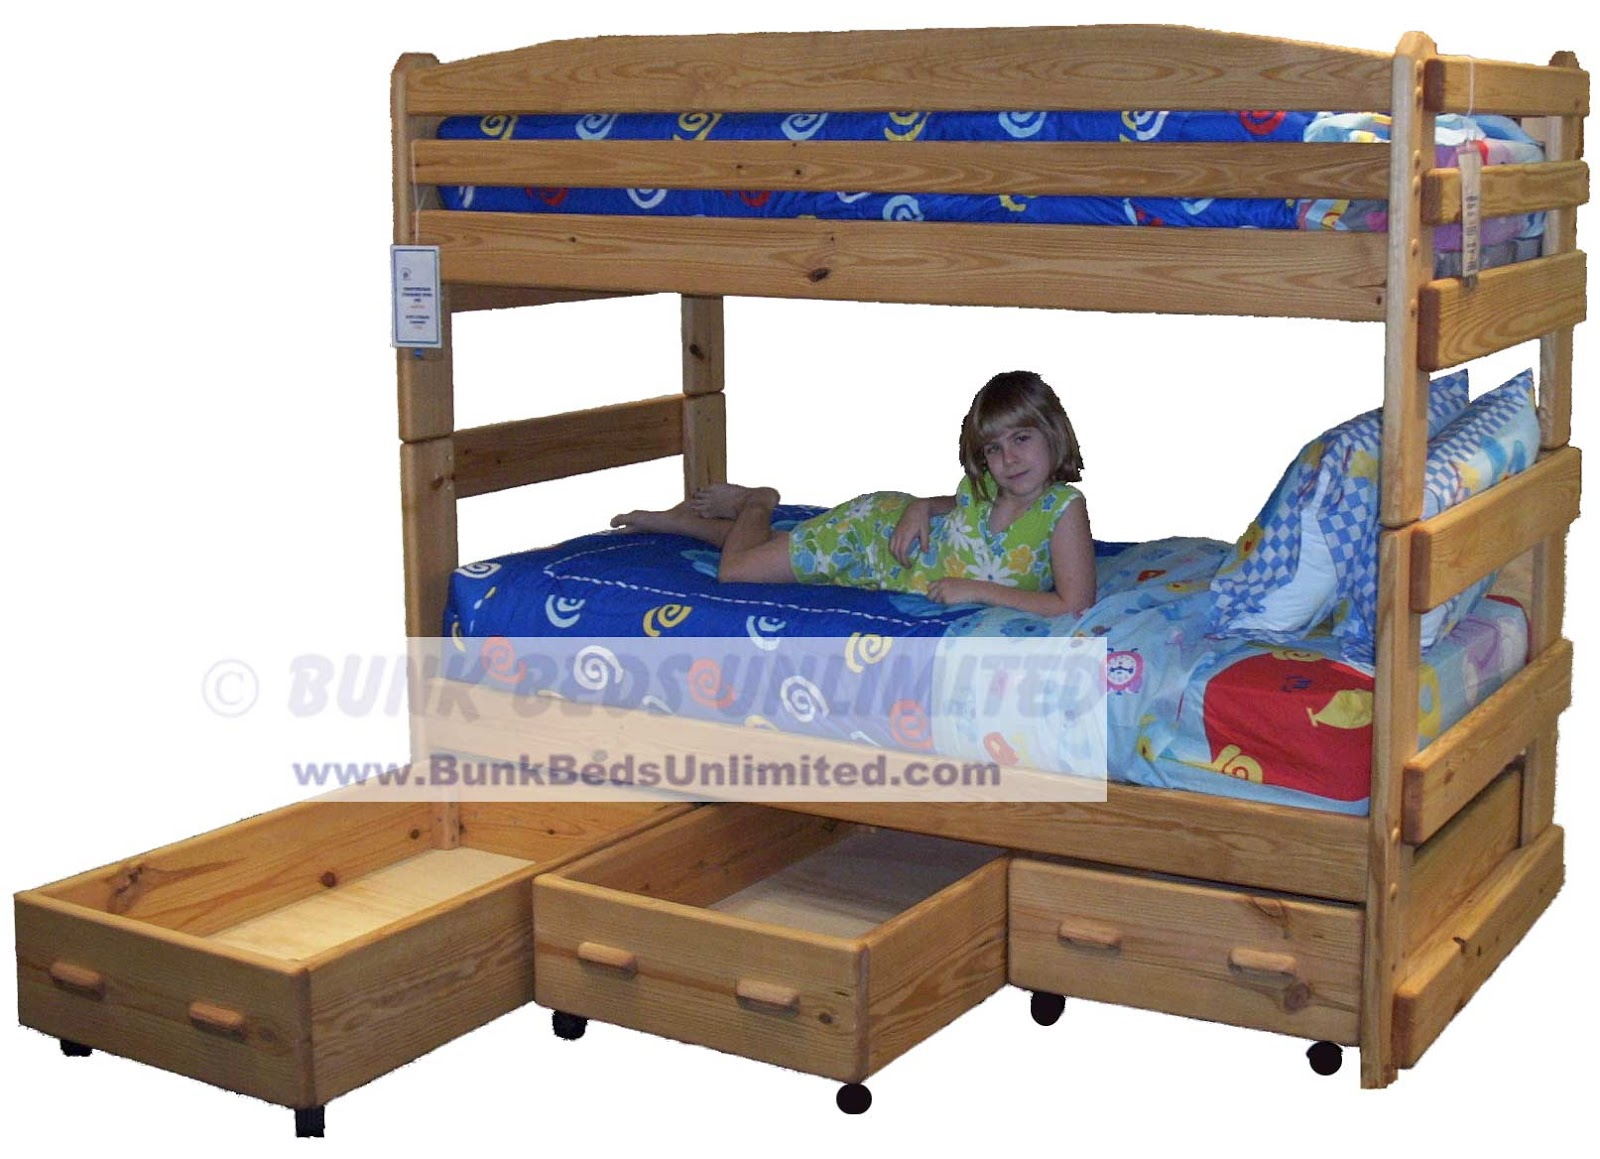 Full Over Full Bunk Bed Plans | BED PLANS DIY & BLUEPRINTS